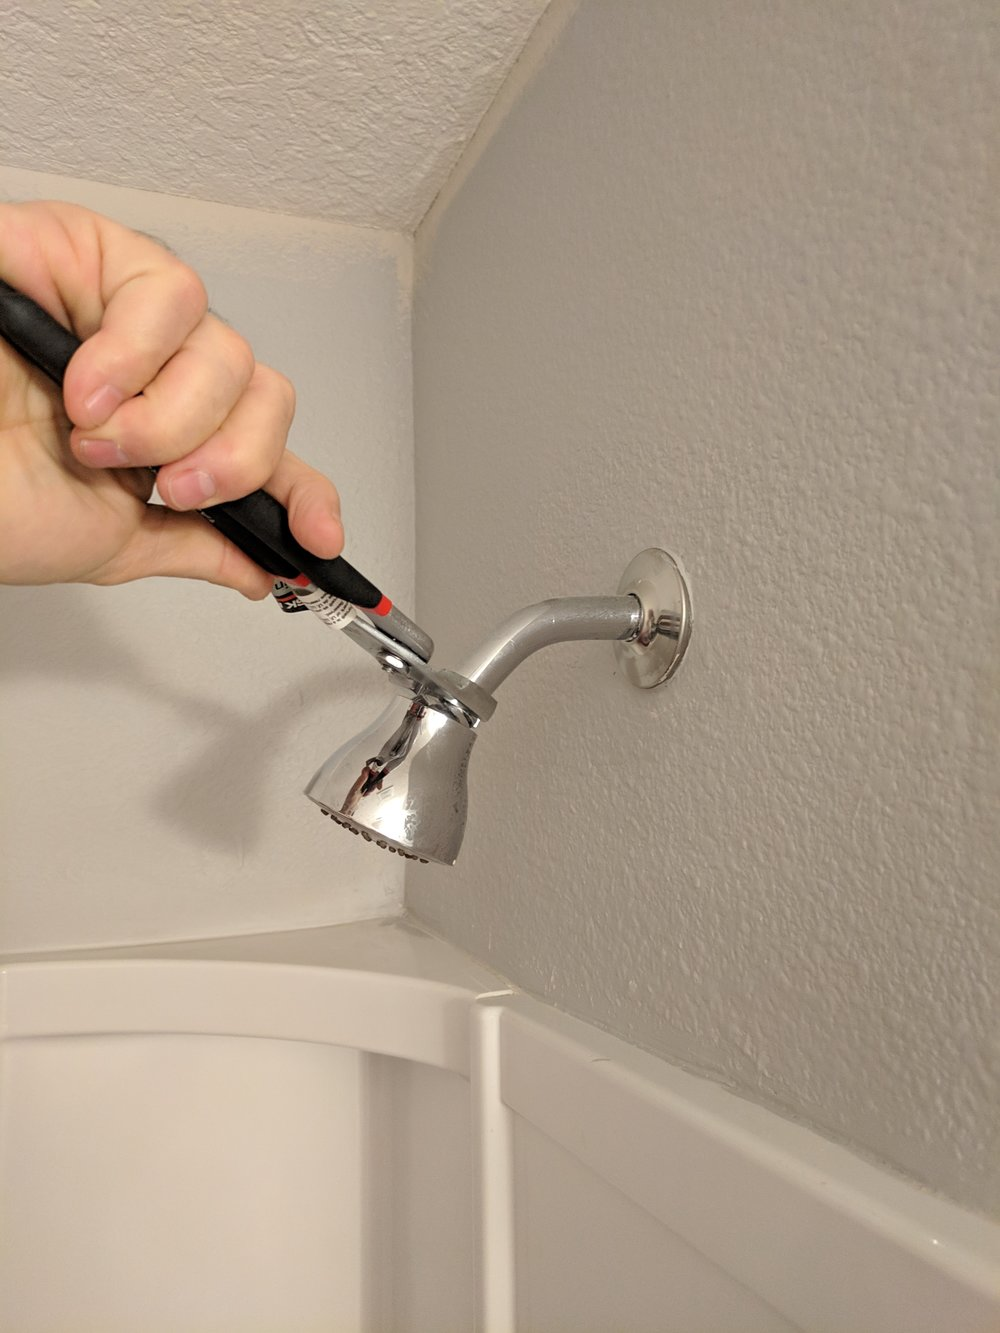 Remove old shower head.